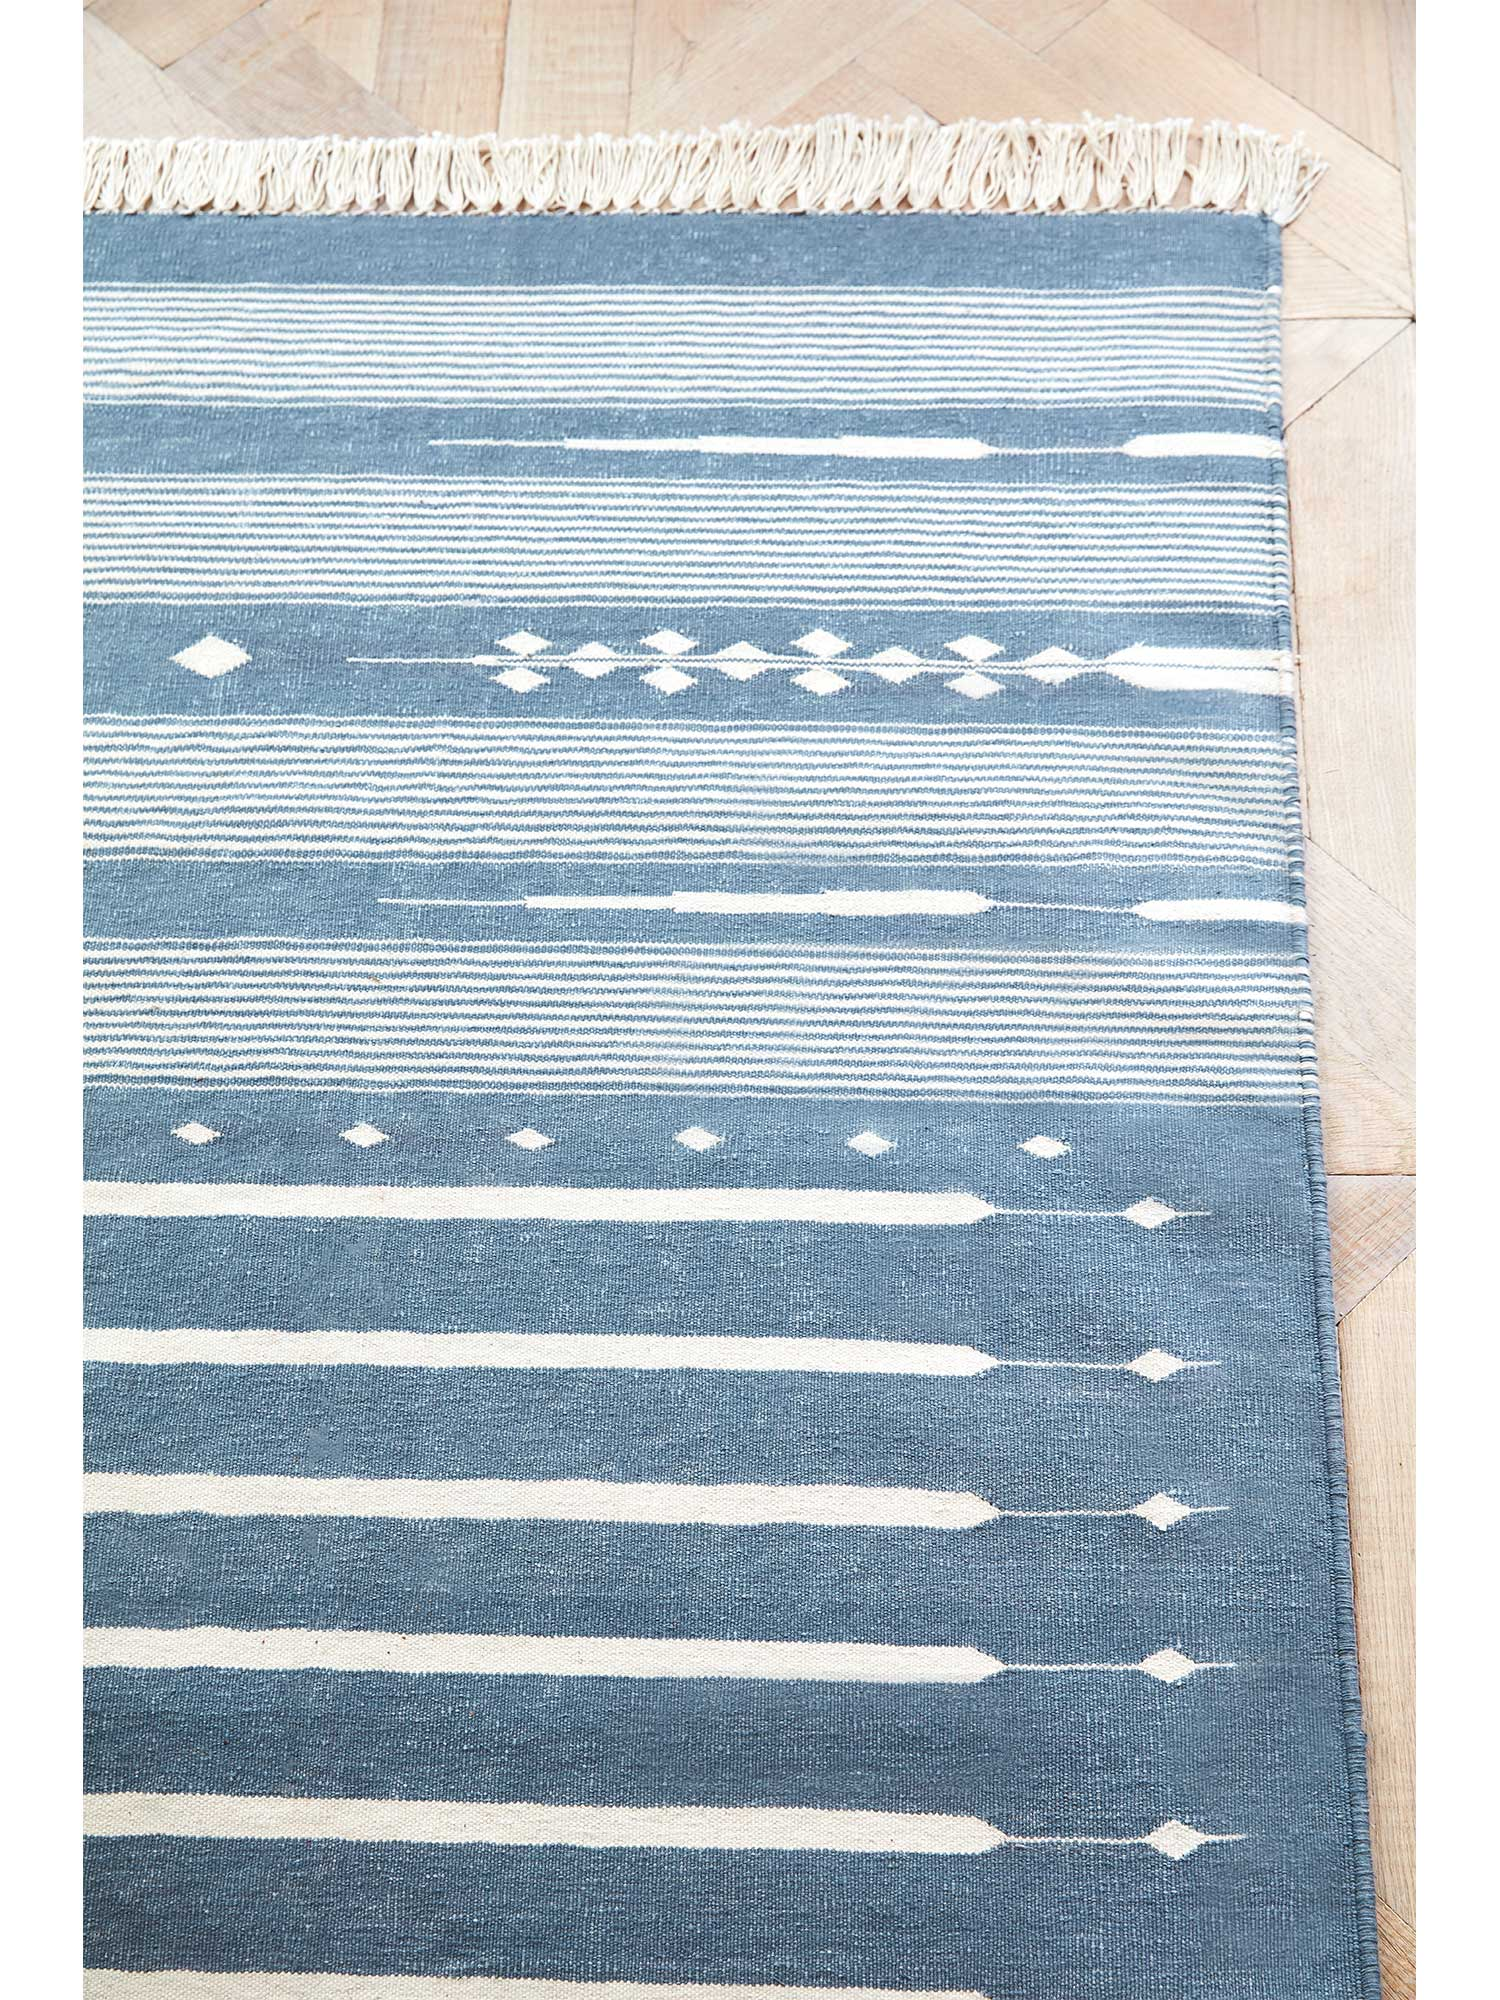 Blue And White Dhurrie Rug Sophie Conran Shop